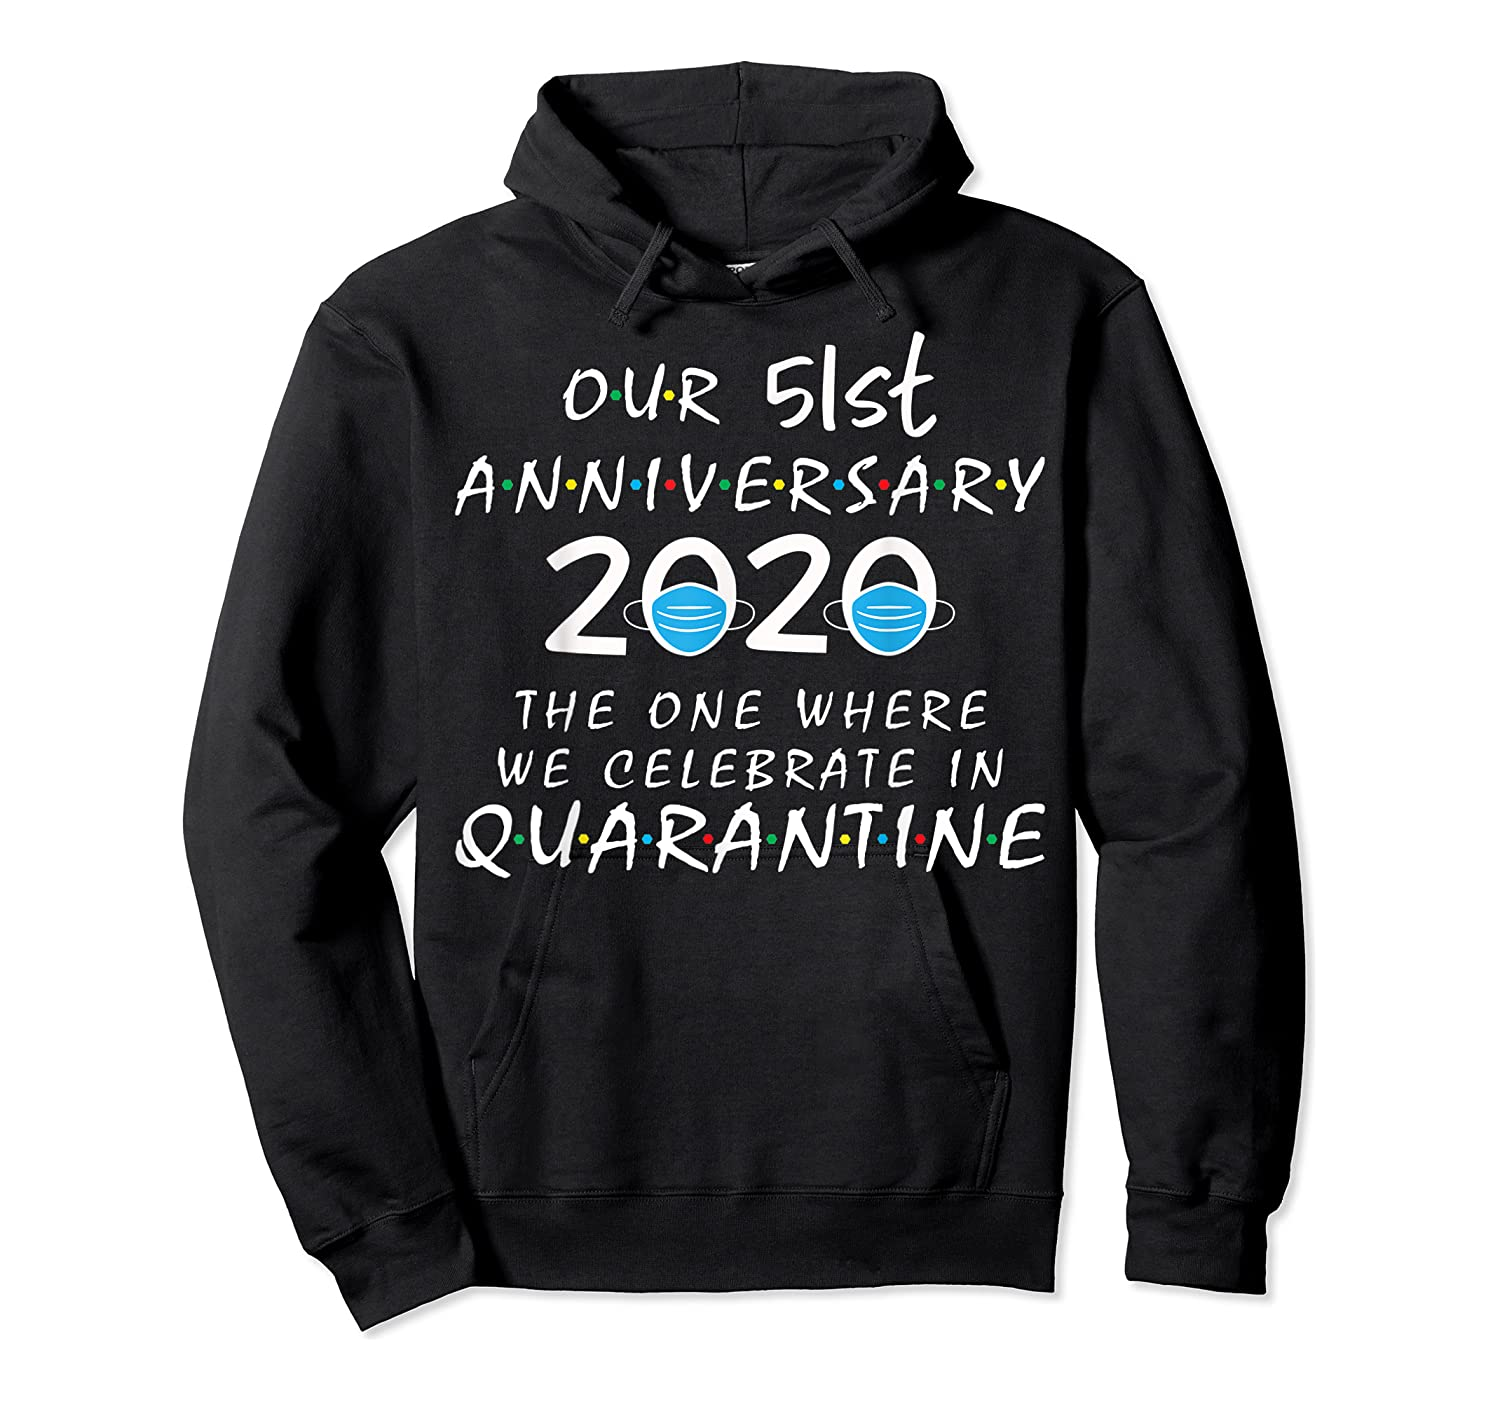 51st Anniversary Celebrate In Quarantine, Social Distancing Shirts Unisex Pullover Hoodie